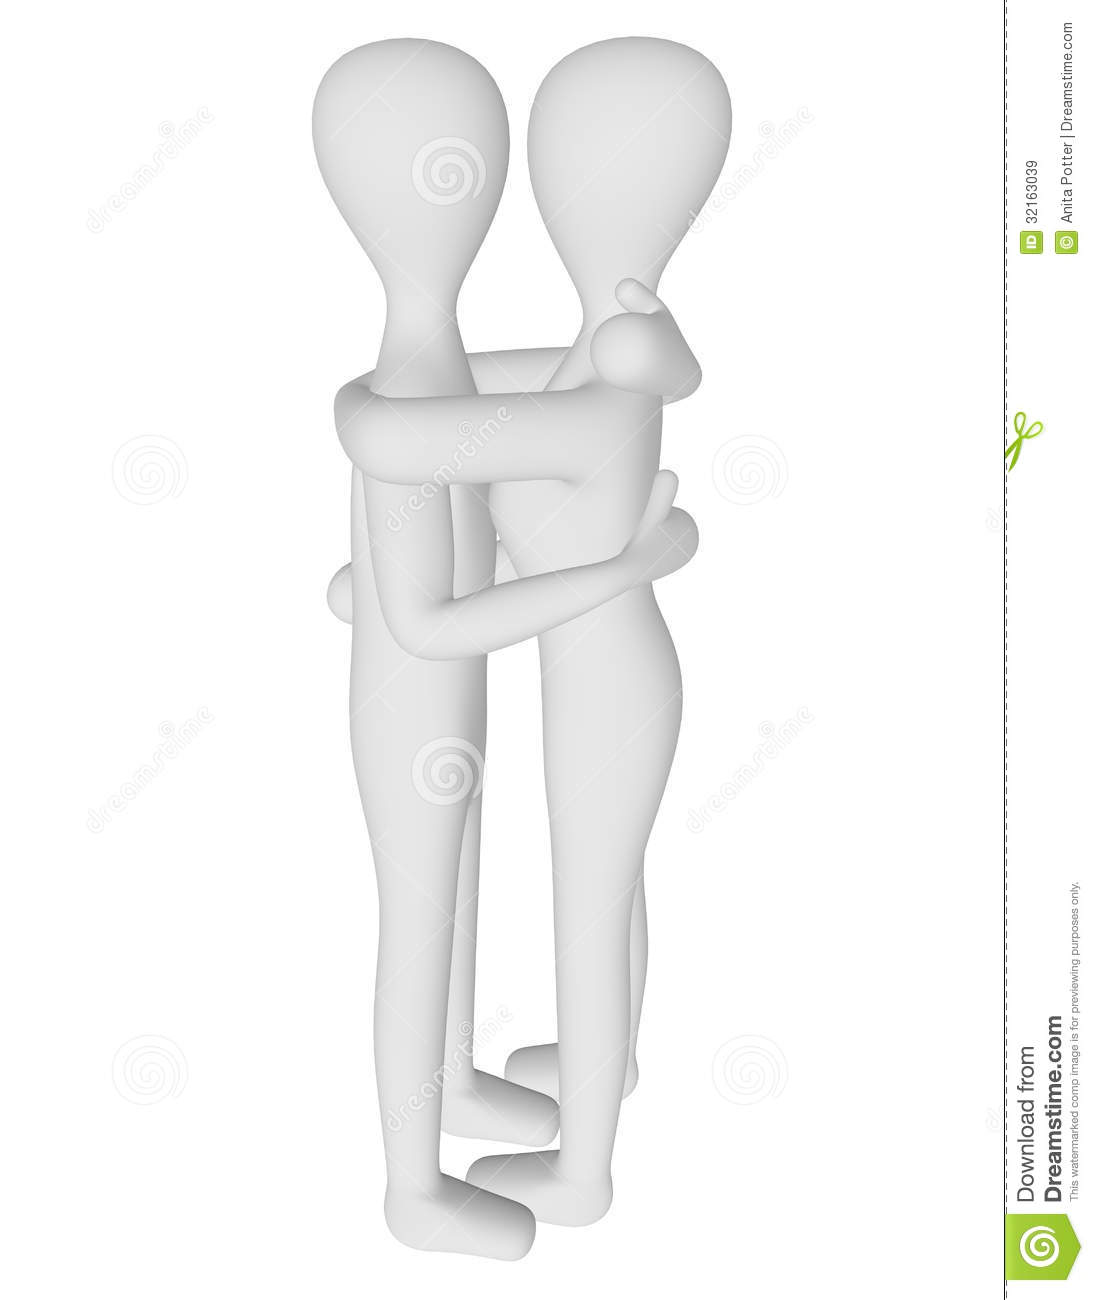 3d Render of Male and Female Characters Hugging